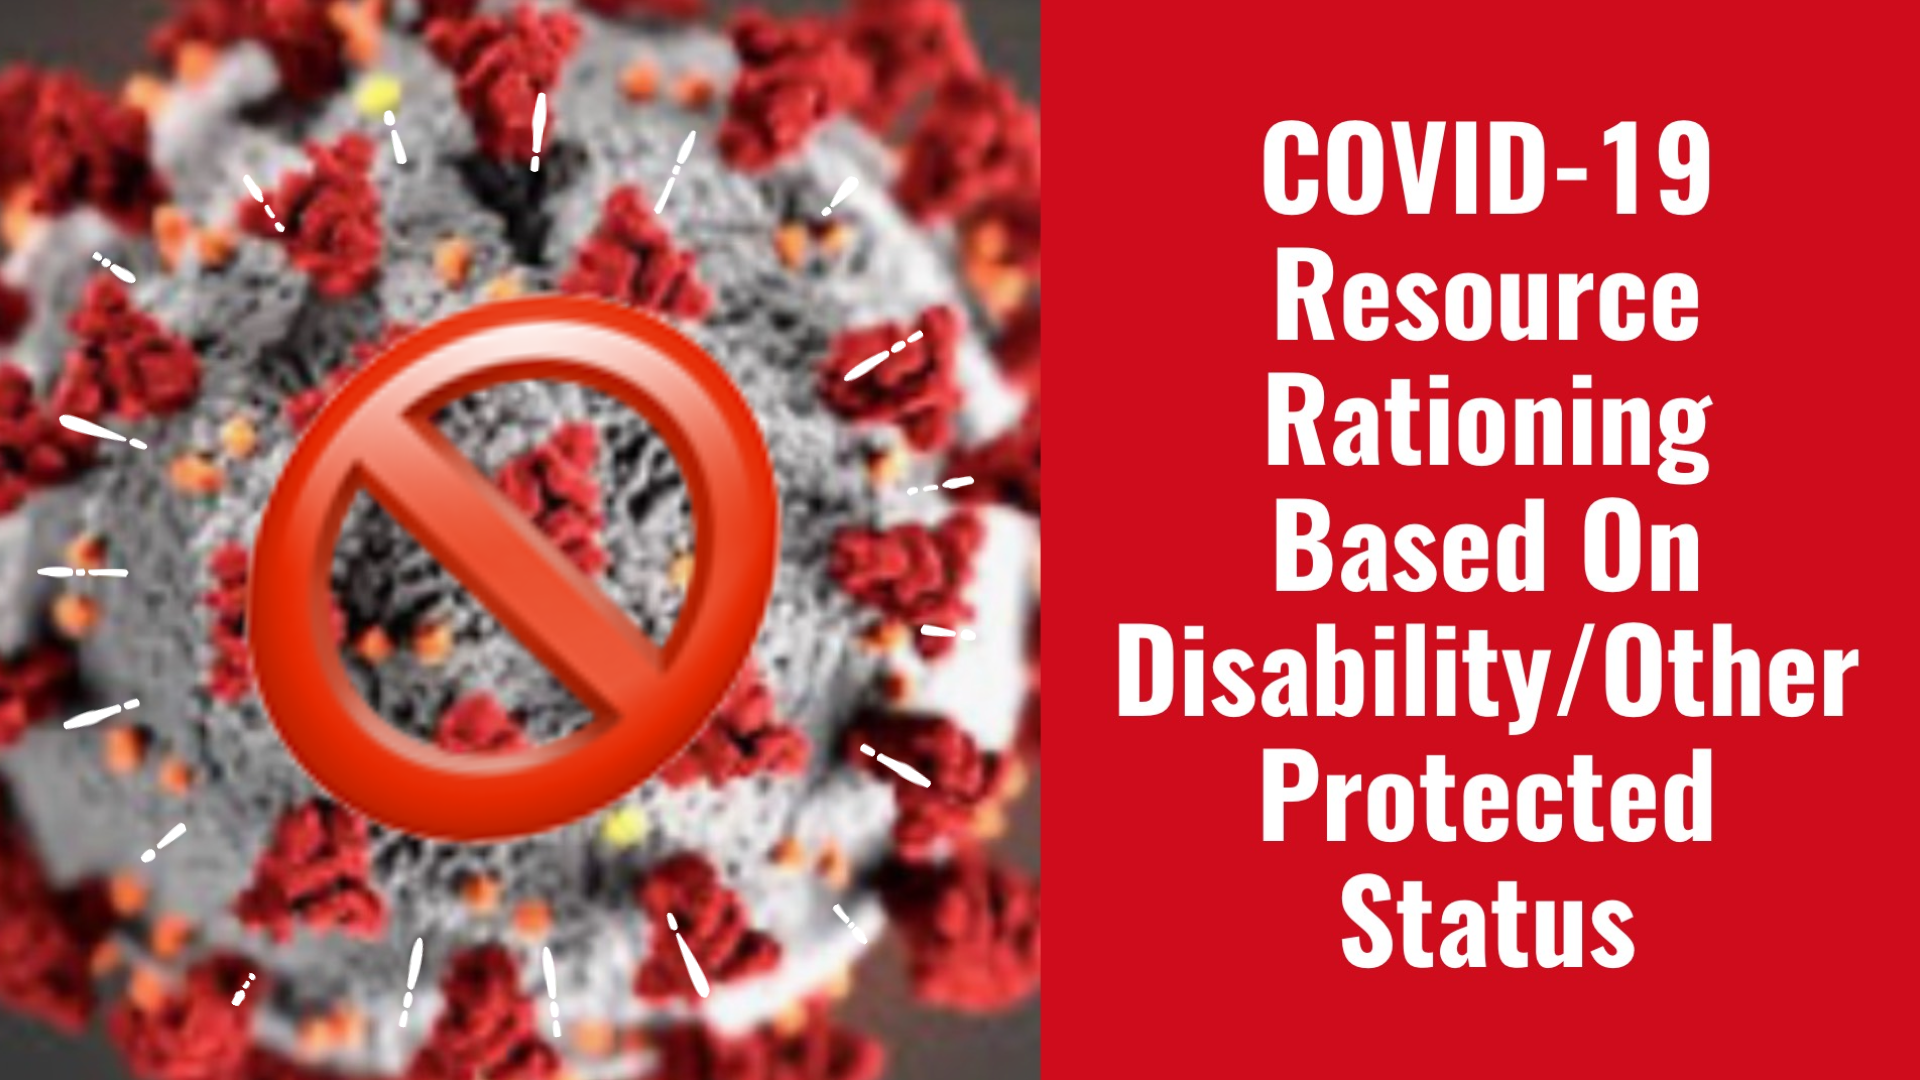 Pennsylvania OCR Settlement Warns Others Against Disability Or Other Civil Rights Discrimination In COVID-19 Resource Allocation & Other Response